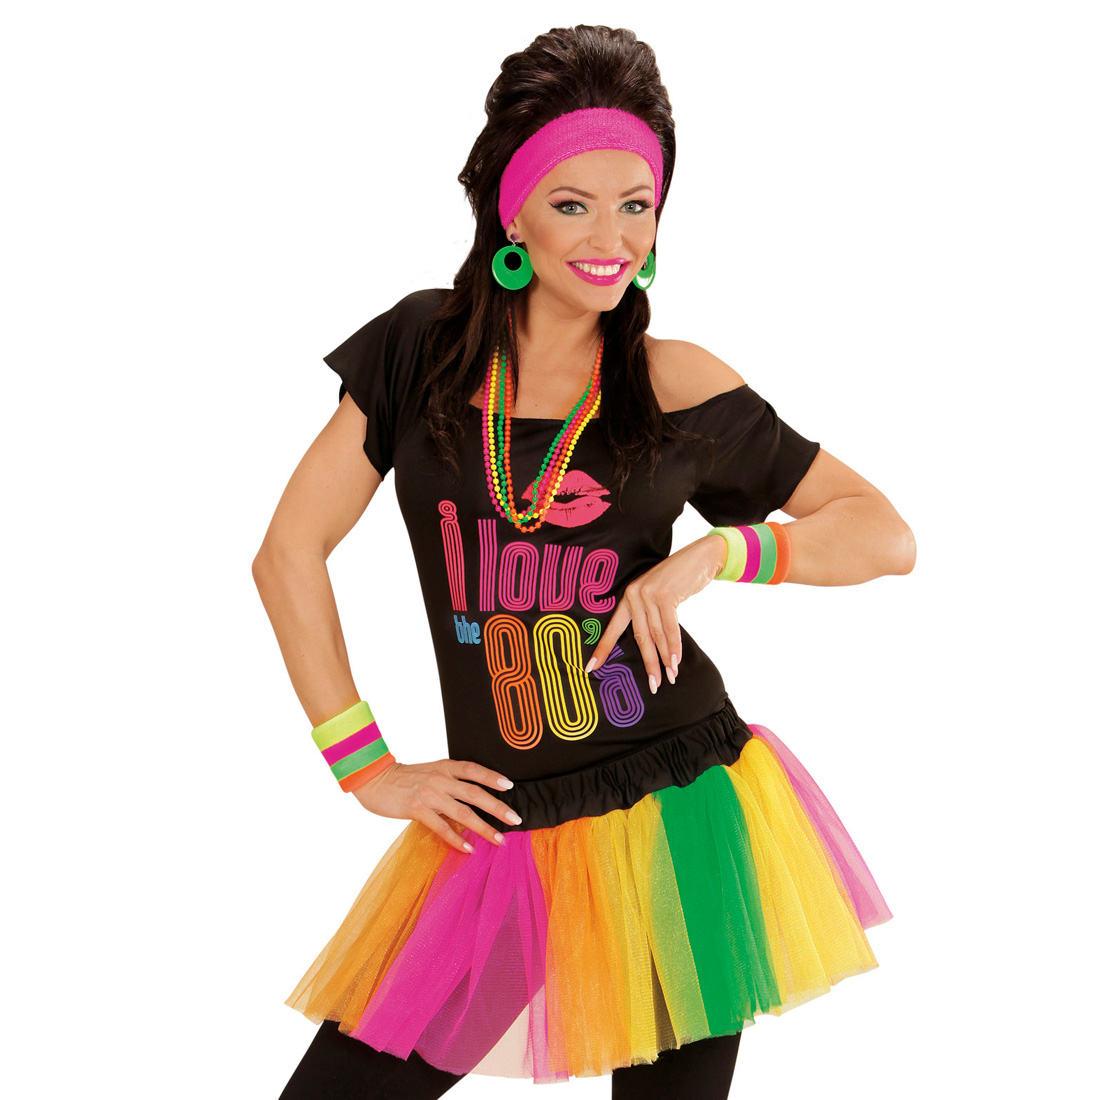 neon tutu damenrock petticoat mini rock 80er jahre mode r schen minirock kost m ebay. Black Bedroom Furniture Sets. Home Design Ideas